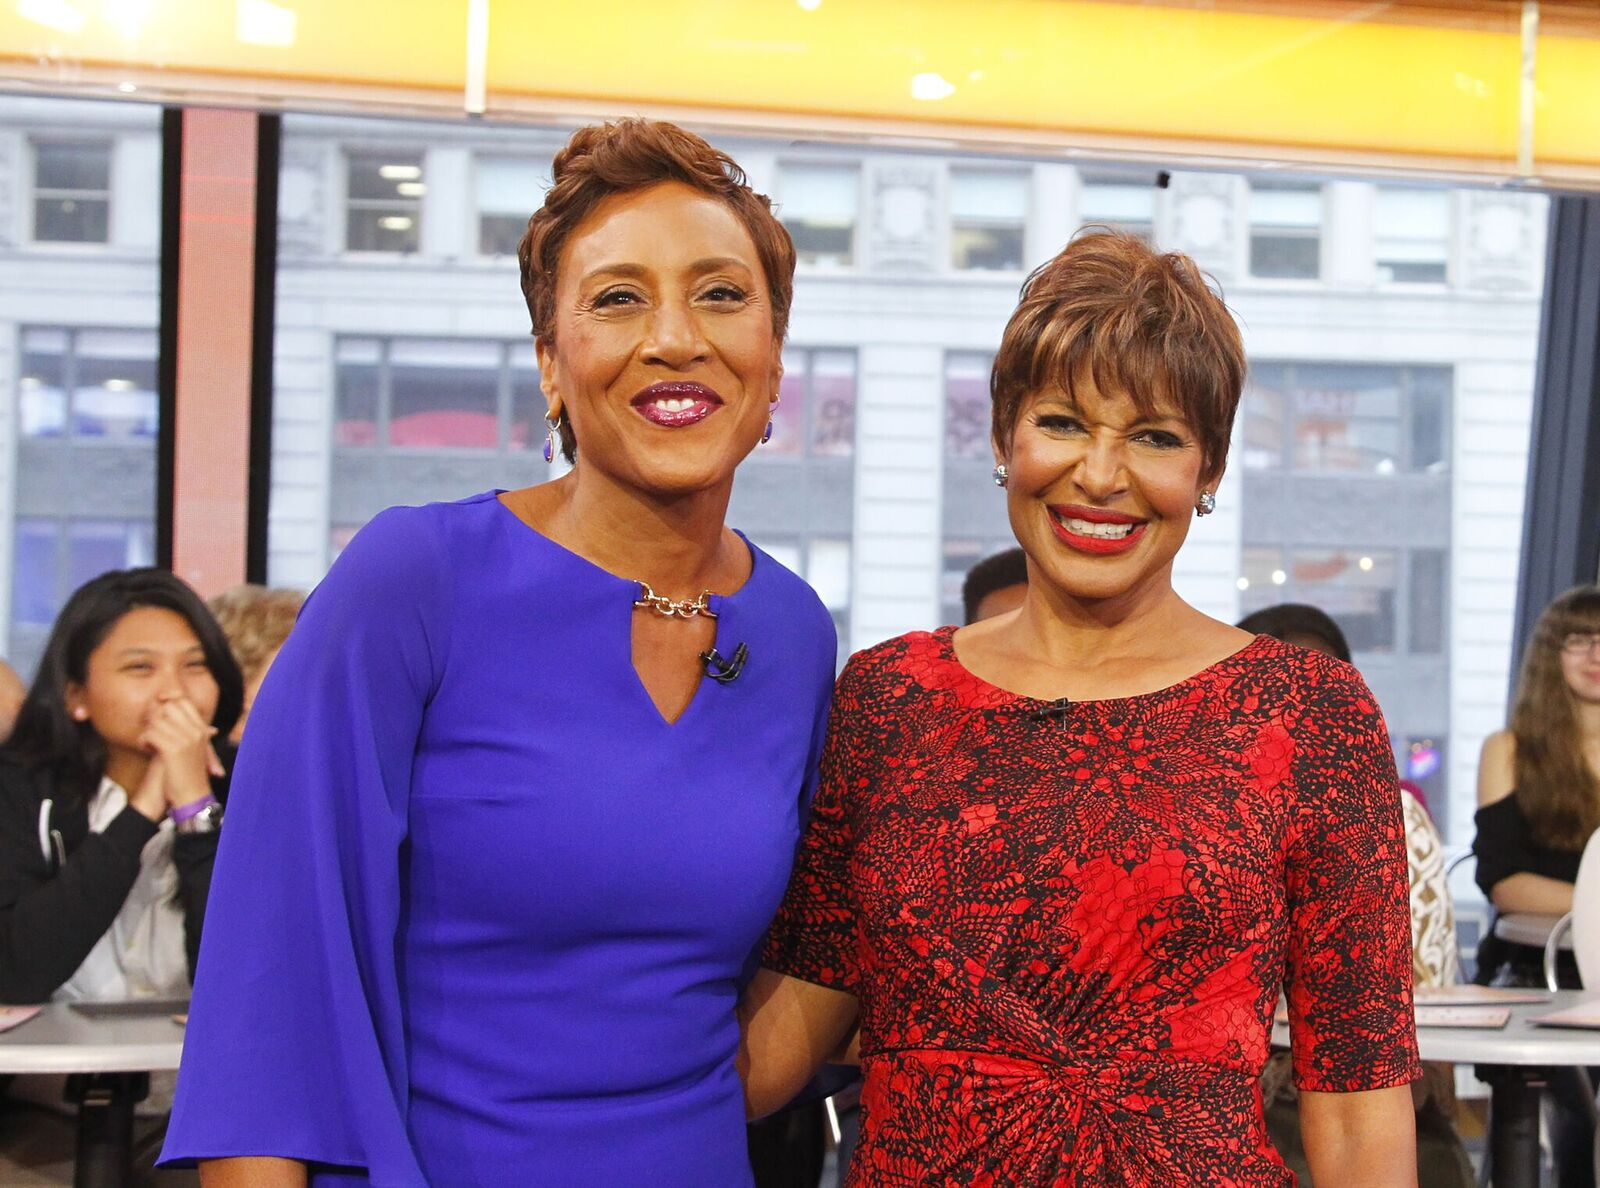 """Robin Roberts and sister Sally-Ann celebrate her 5th birthday, which commemorates the day she received a lifesaving bone-marrow transplant to treat MDS on """"Good Morning America,"""" Wednesday, September 20, 2017 